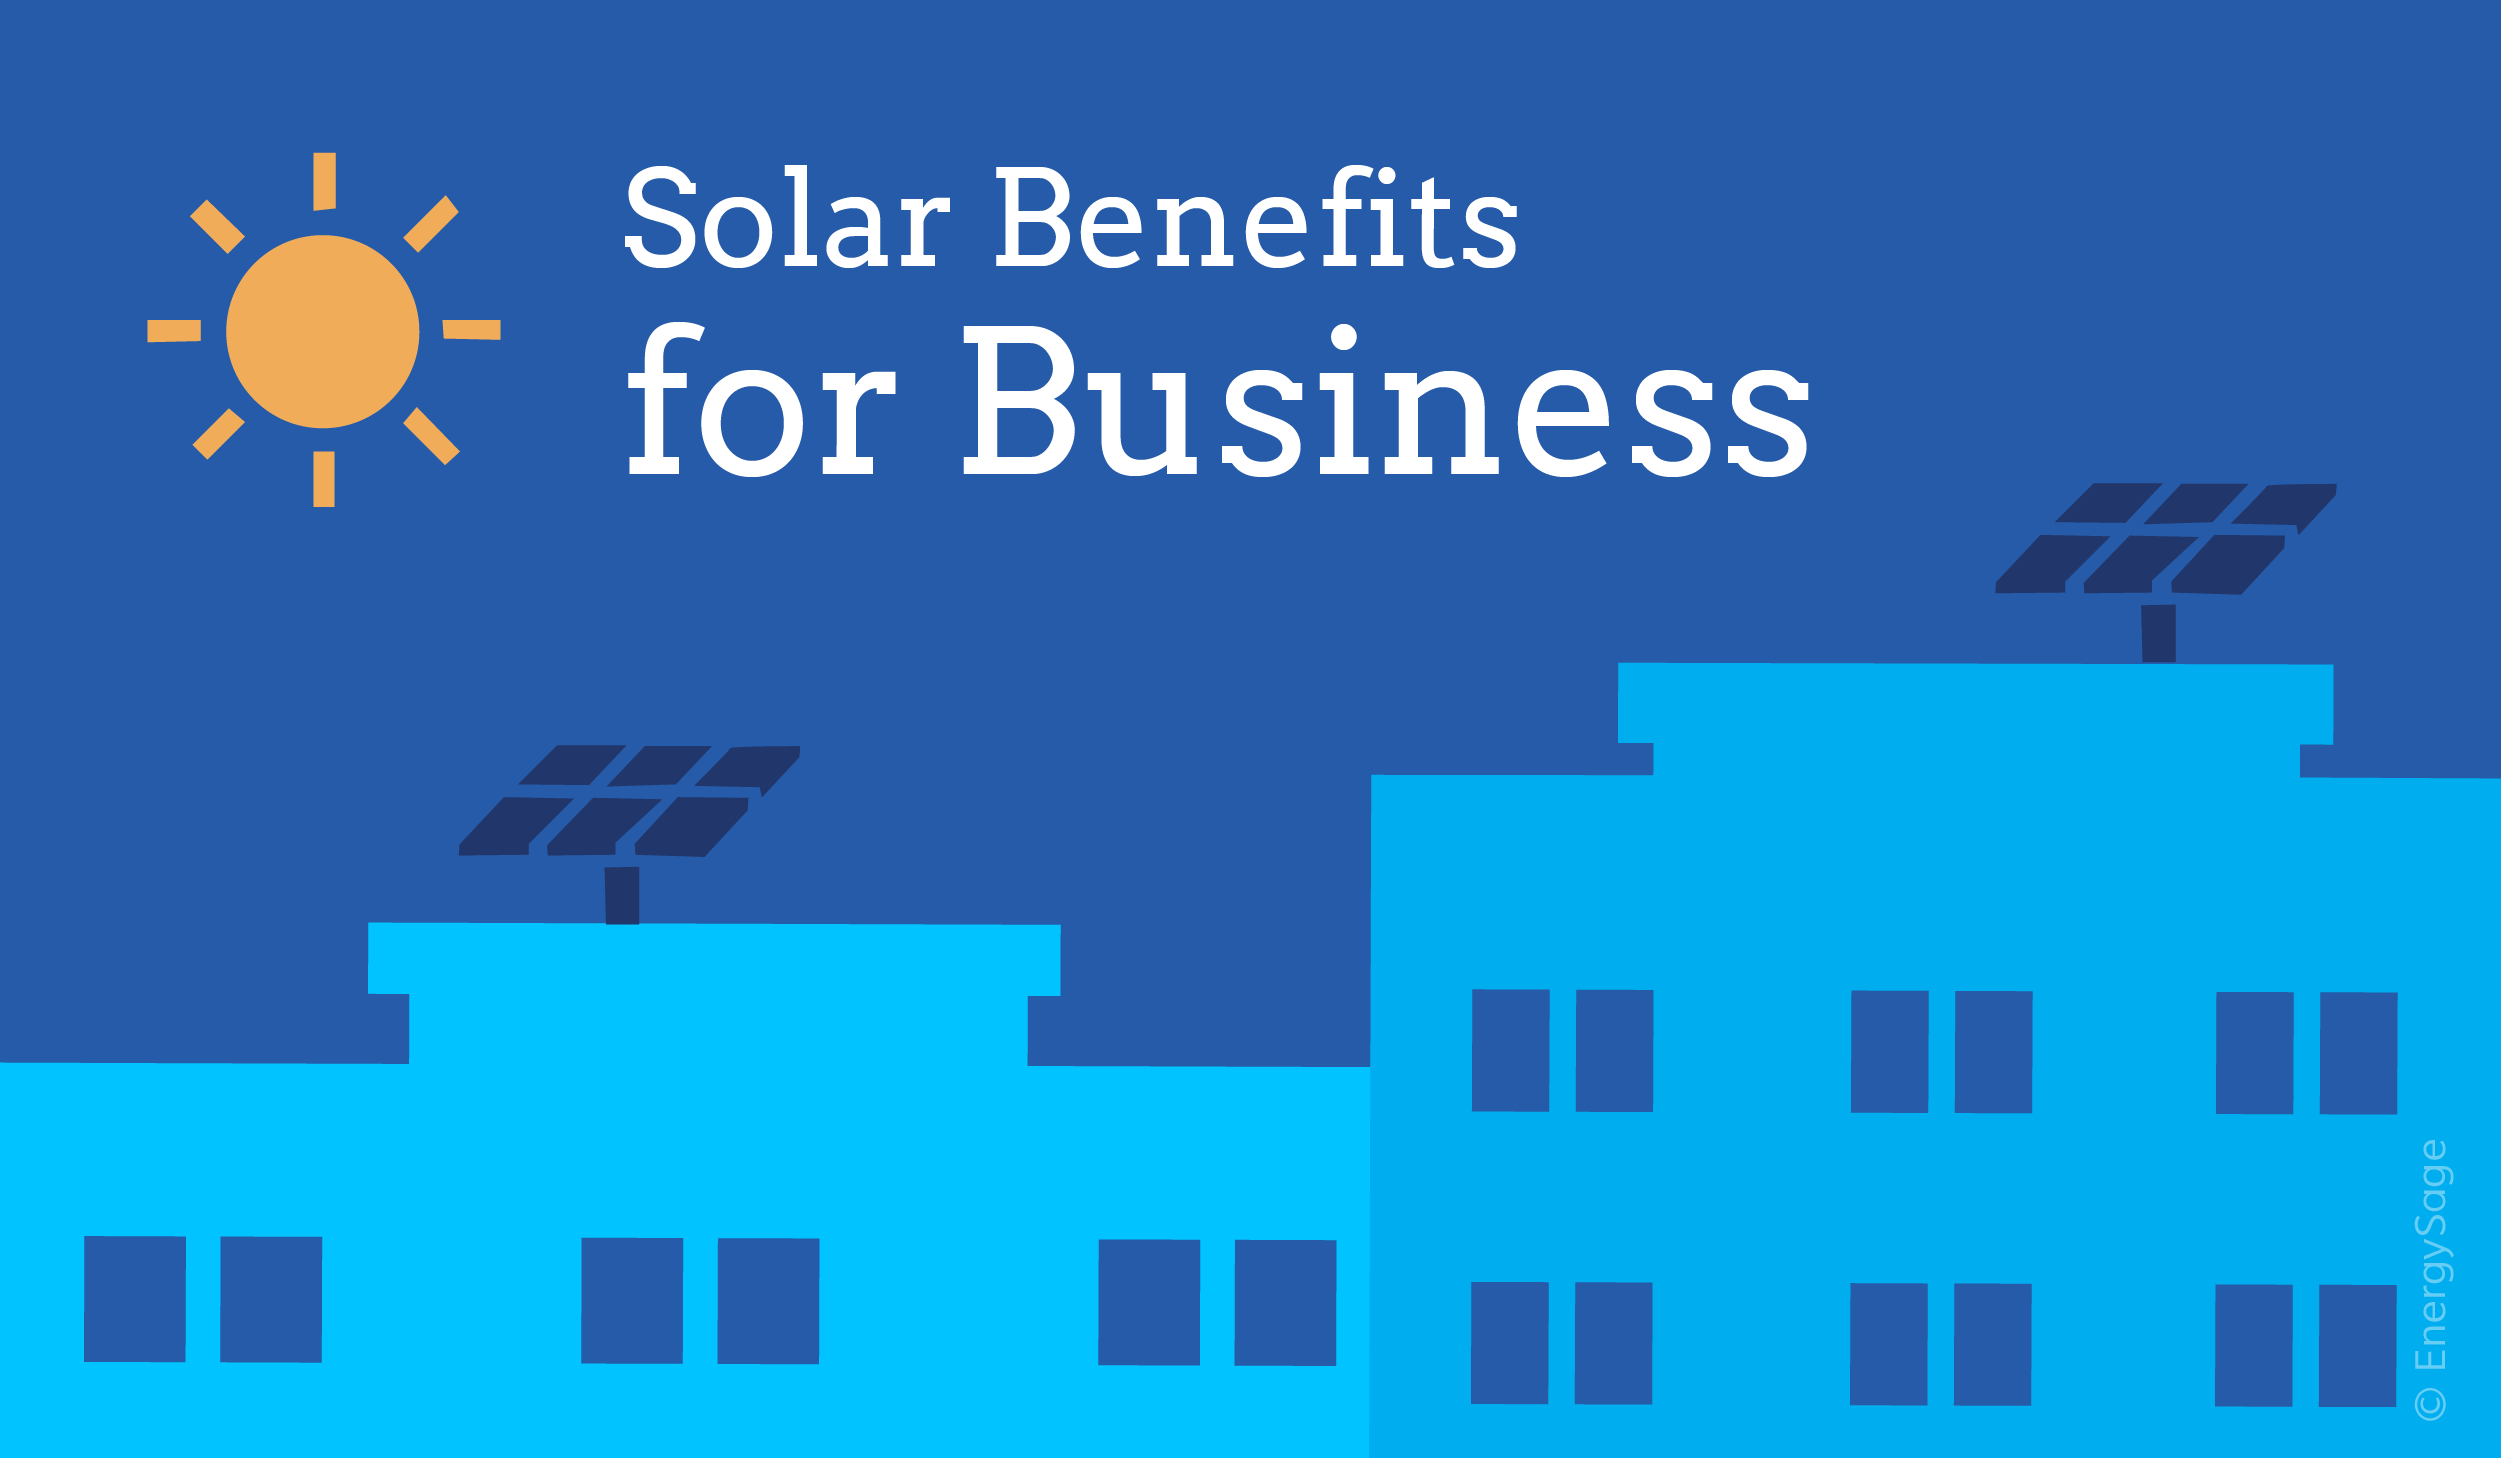 Commercial solar benefits for business